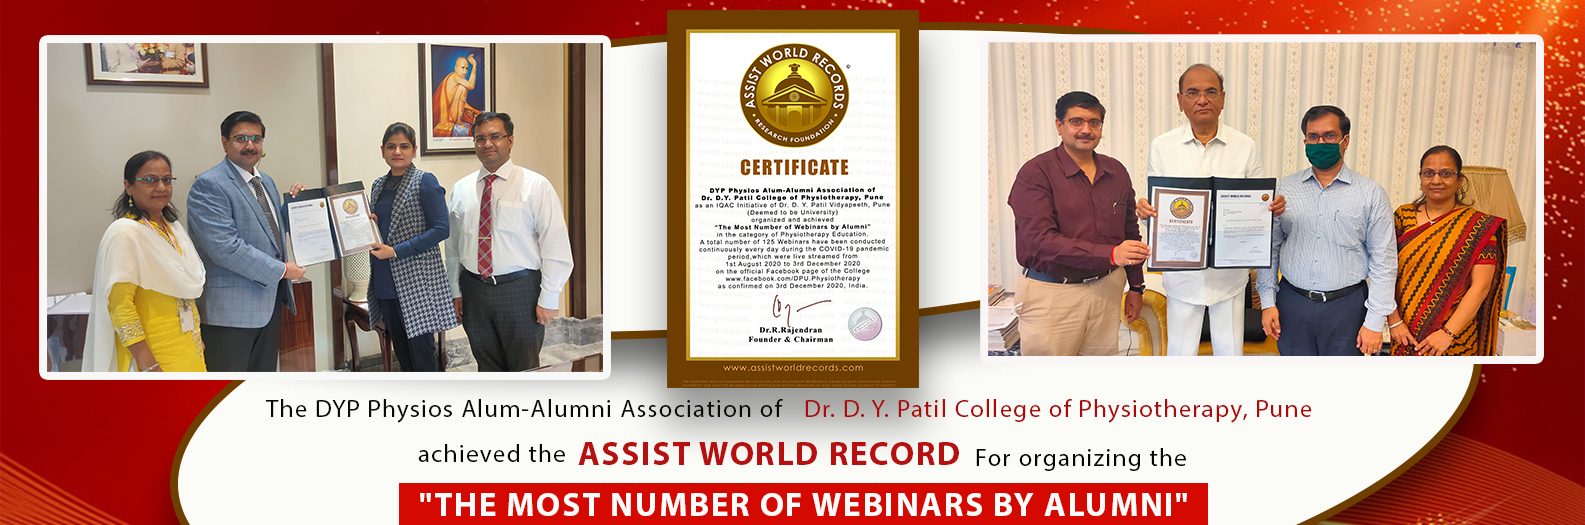 ASSIST WORLD RECORD For organizing the 'THE MOST NUMBER OF WEBINARS BY ALUMNI'